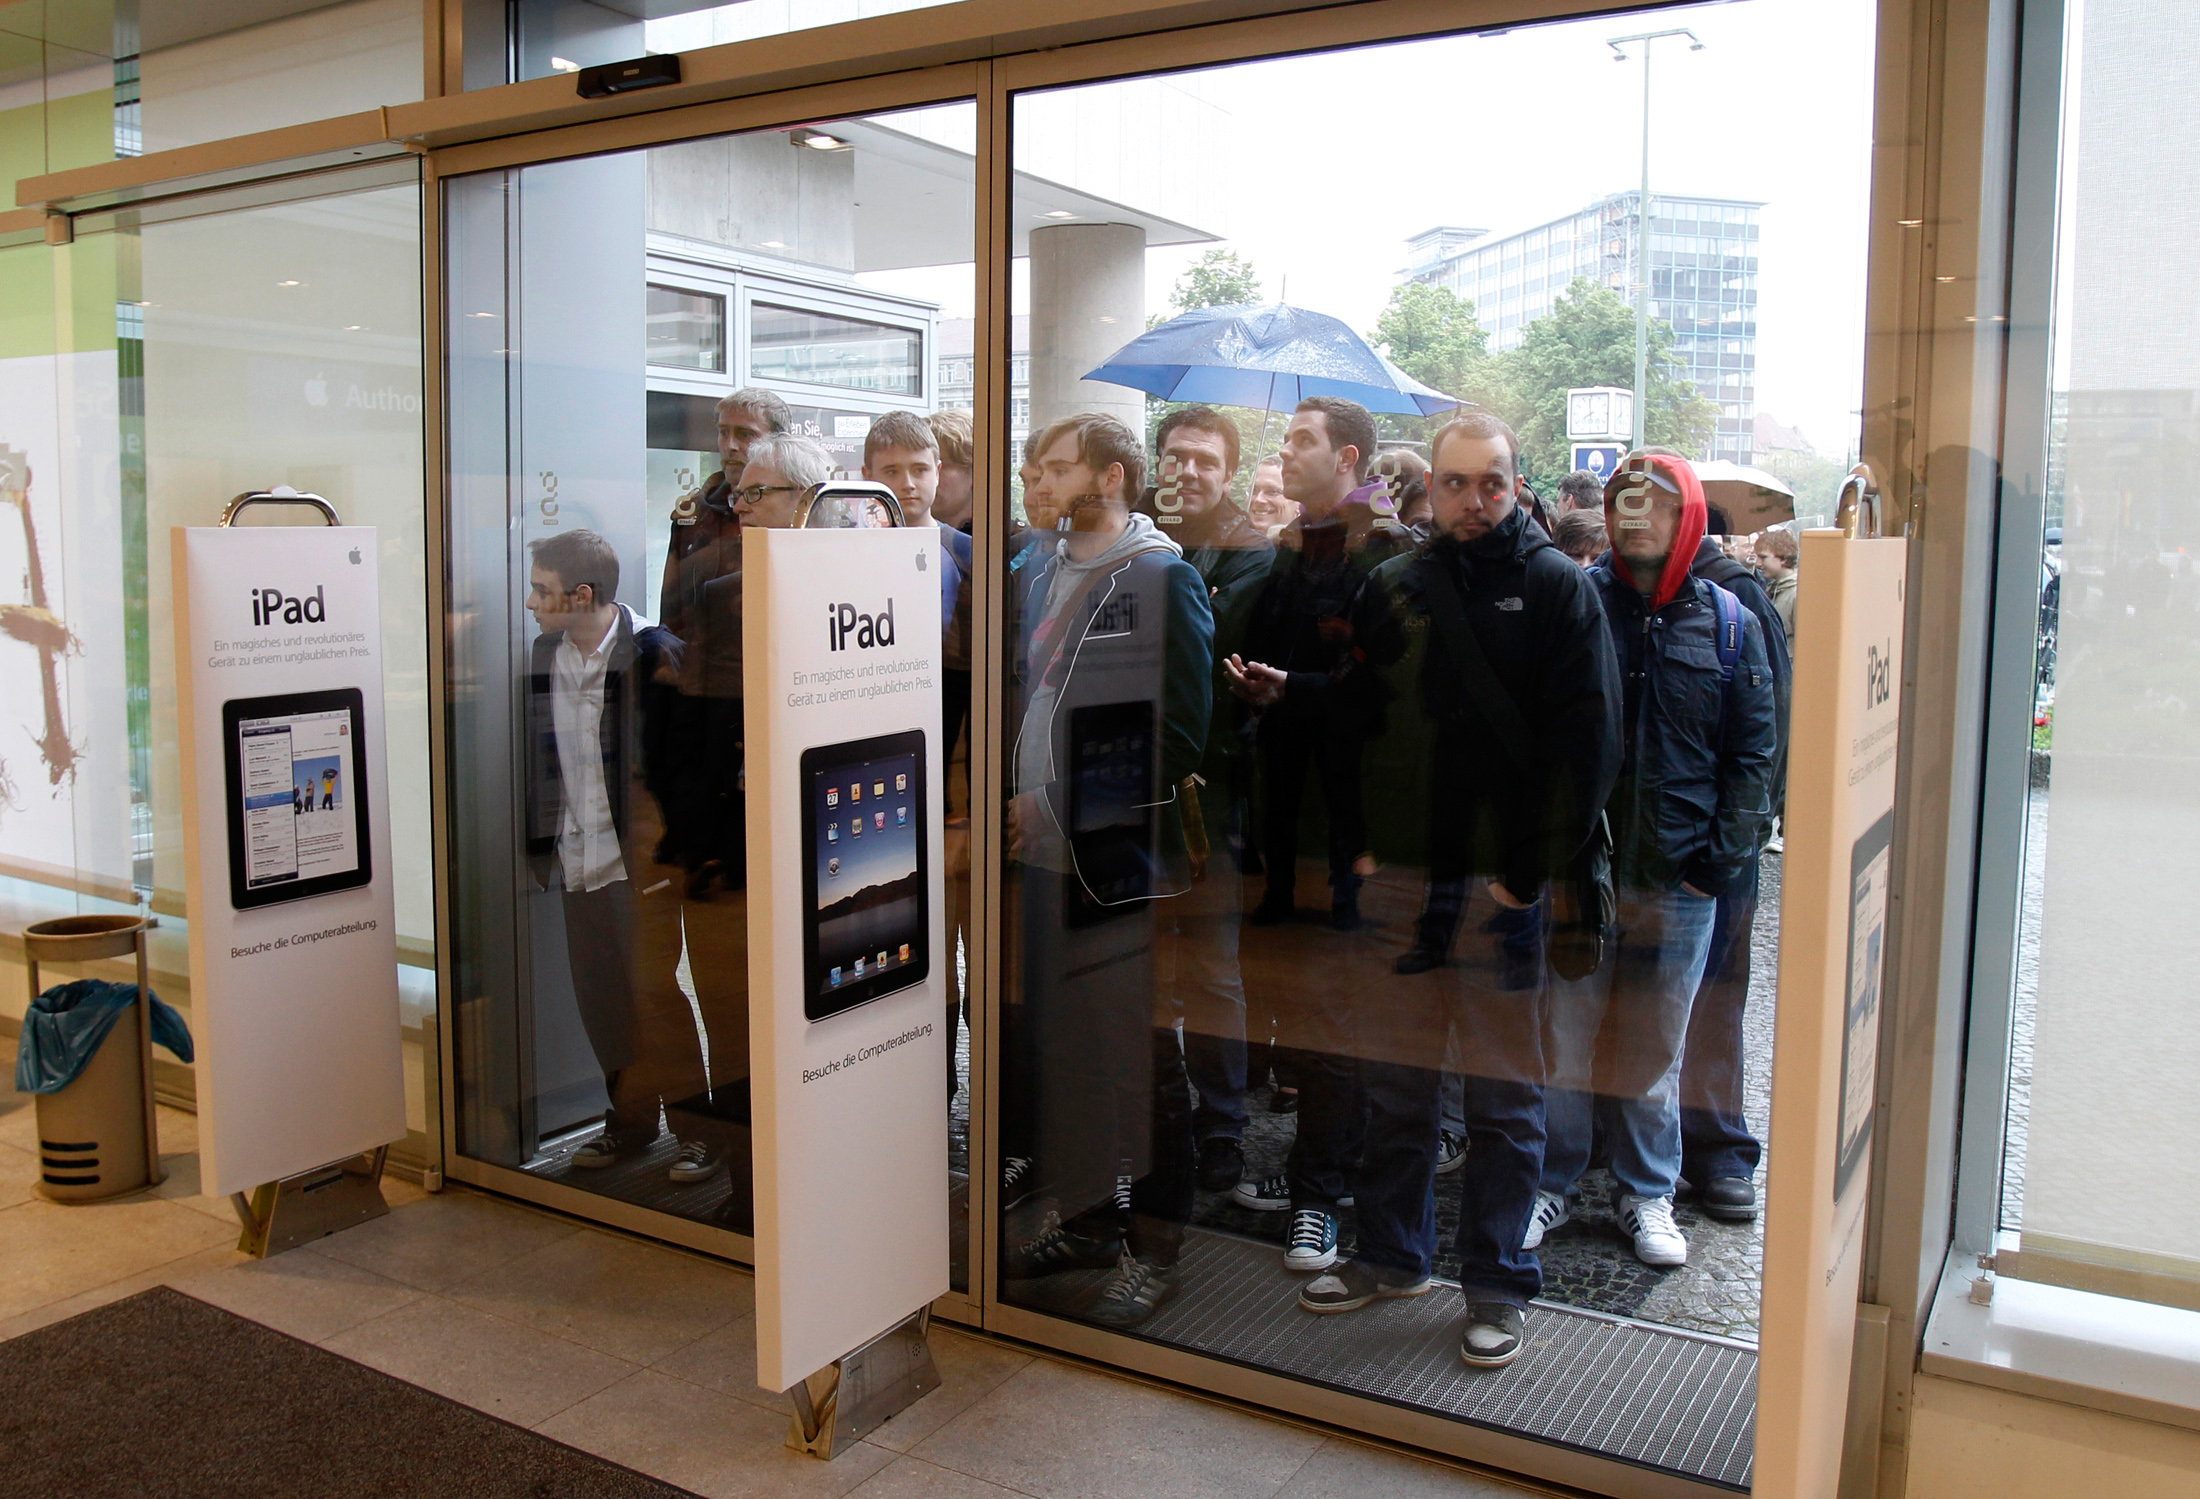 People wait in line to purchase Apple iPads during a launch event at the Apple retail store in Berlin.